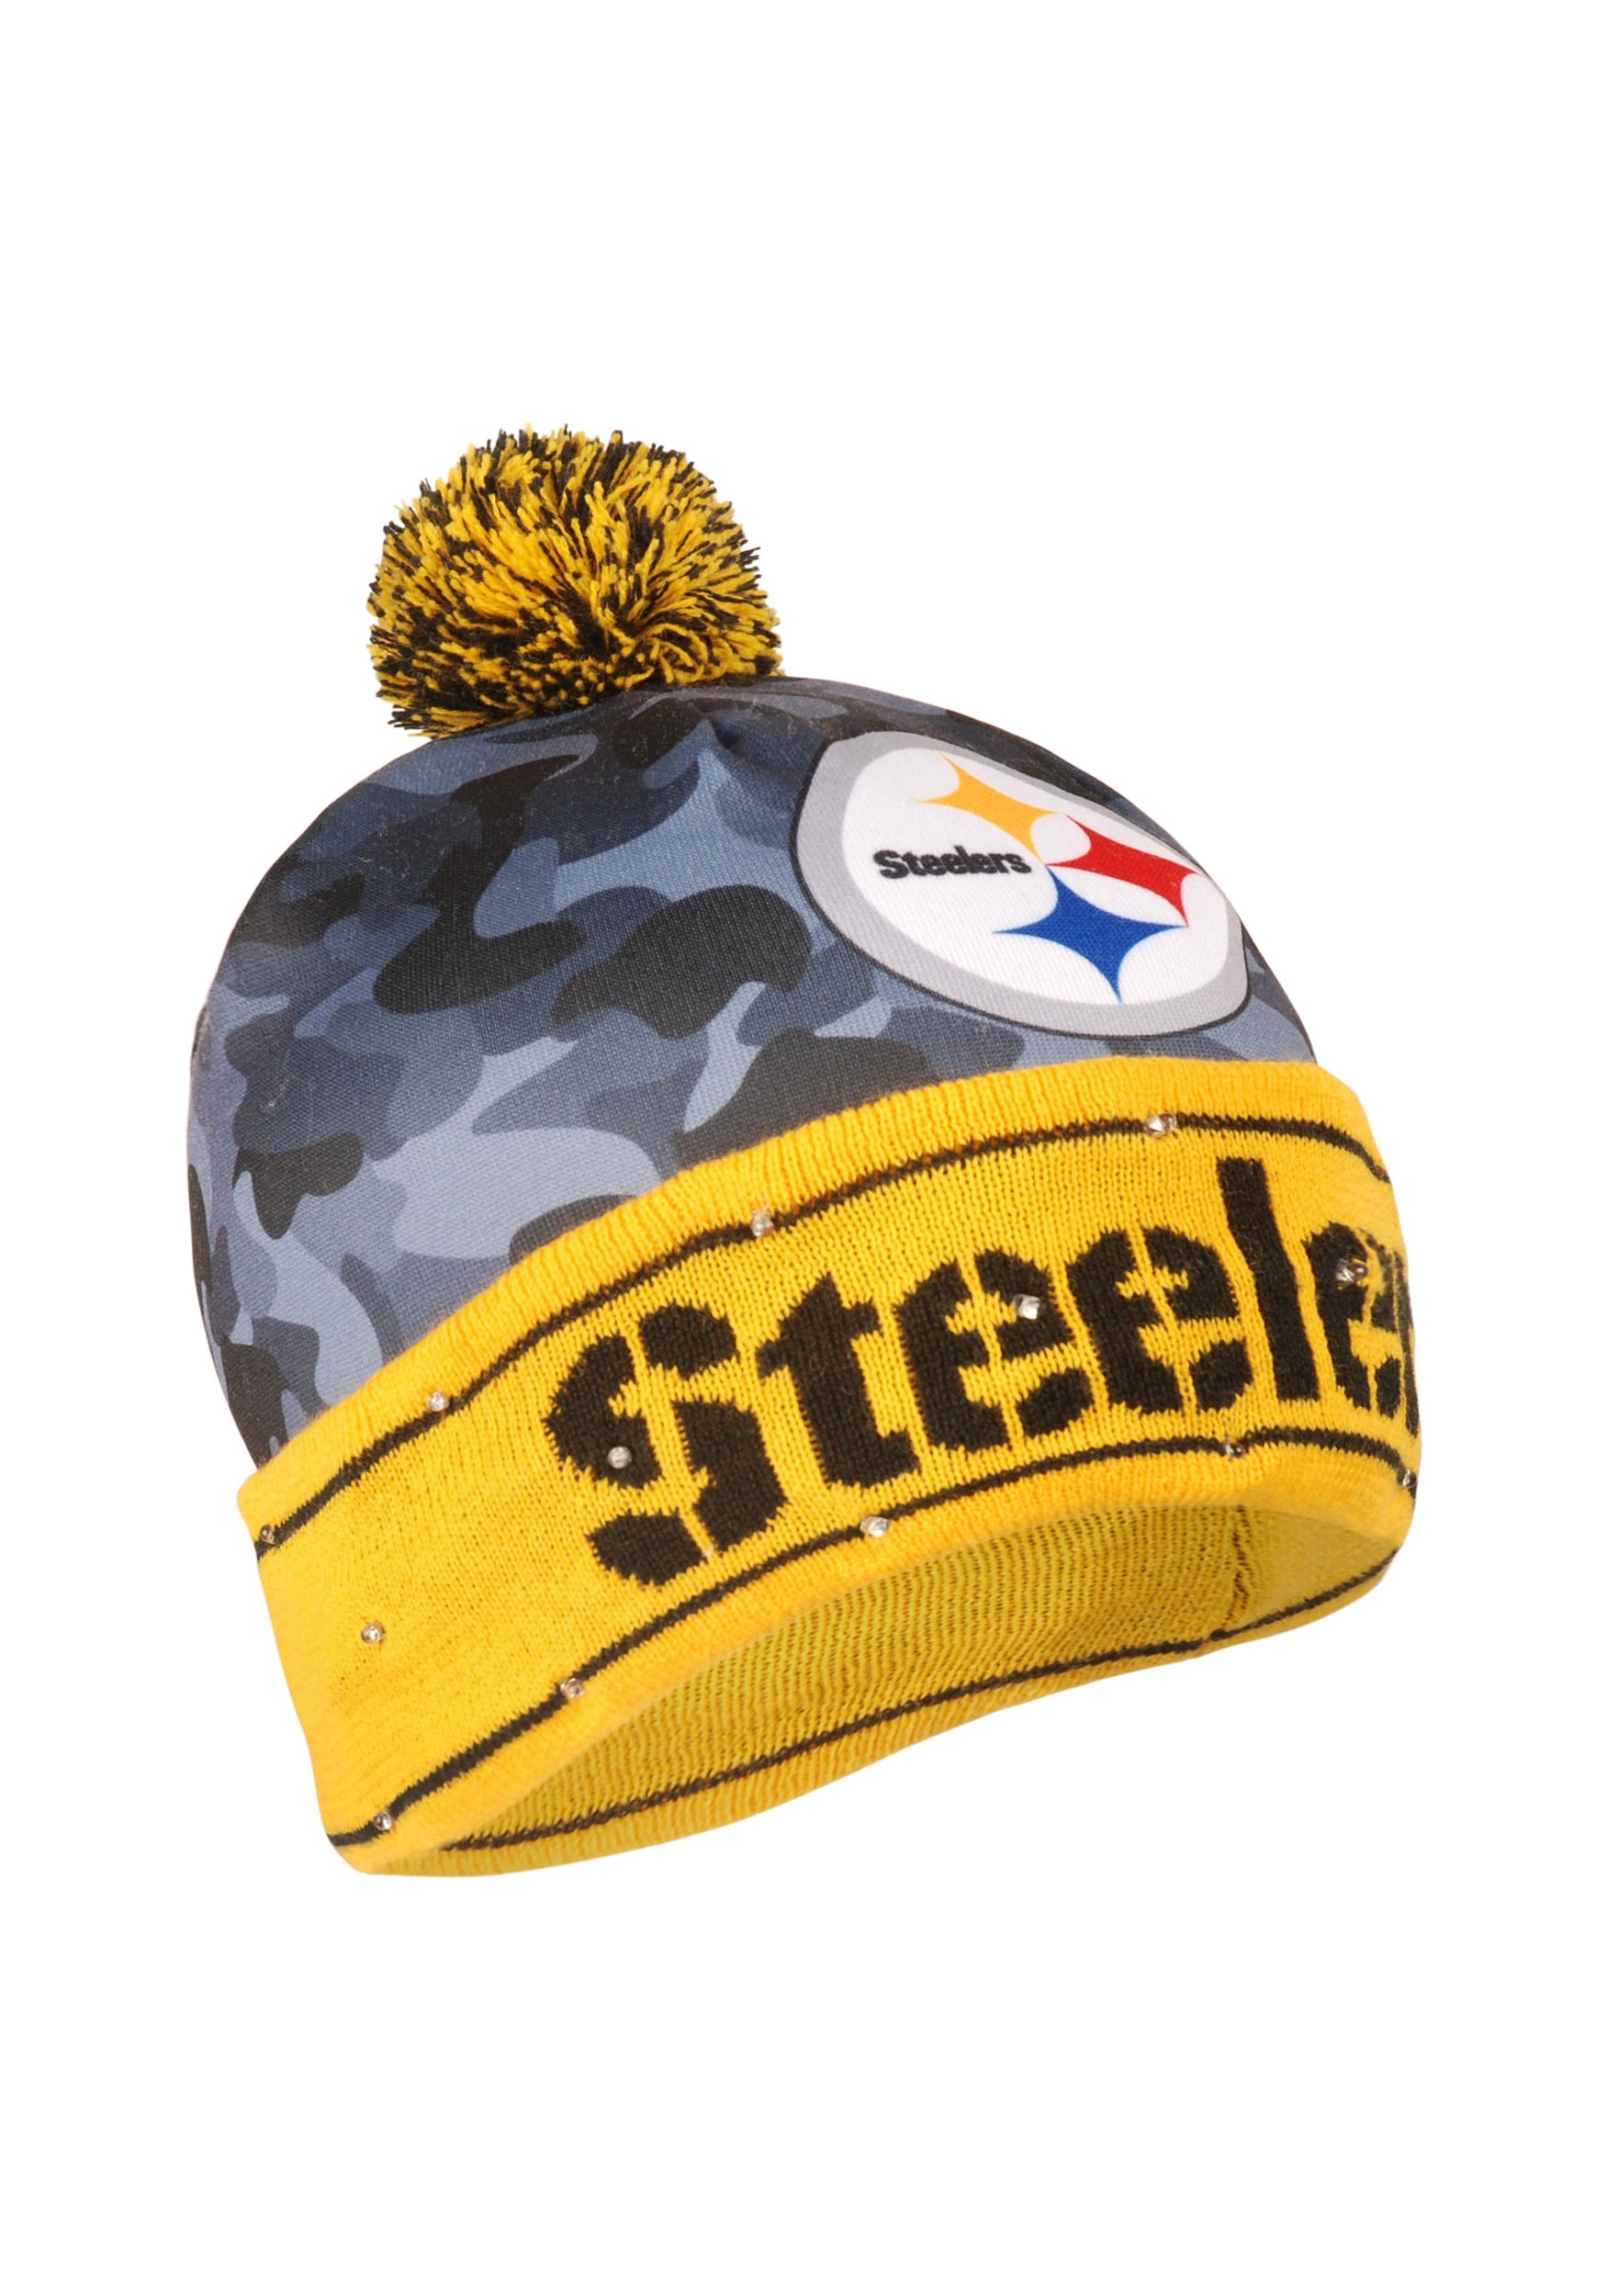 NFL Pittsburgh Steelers Camouflage Light Up Printed Stocking Hat 4acd3a571e0